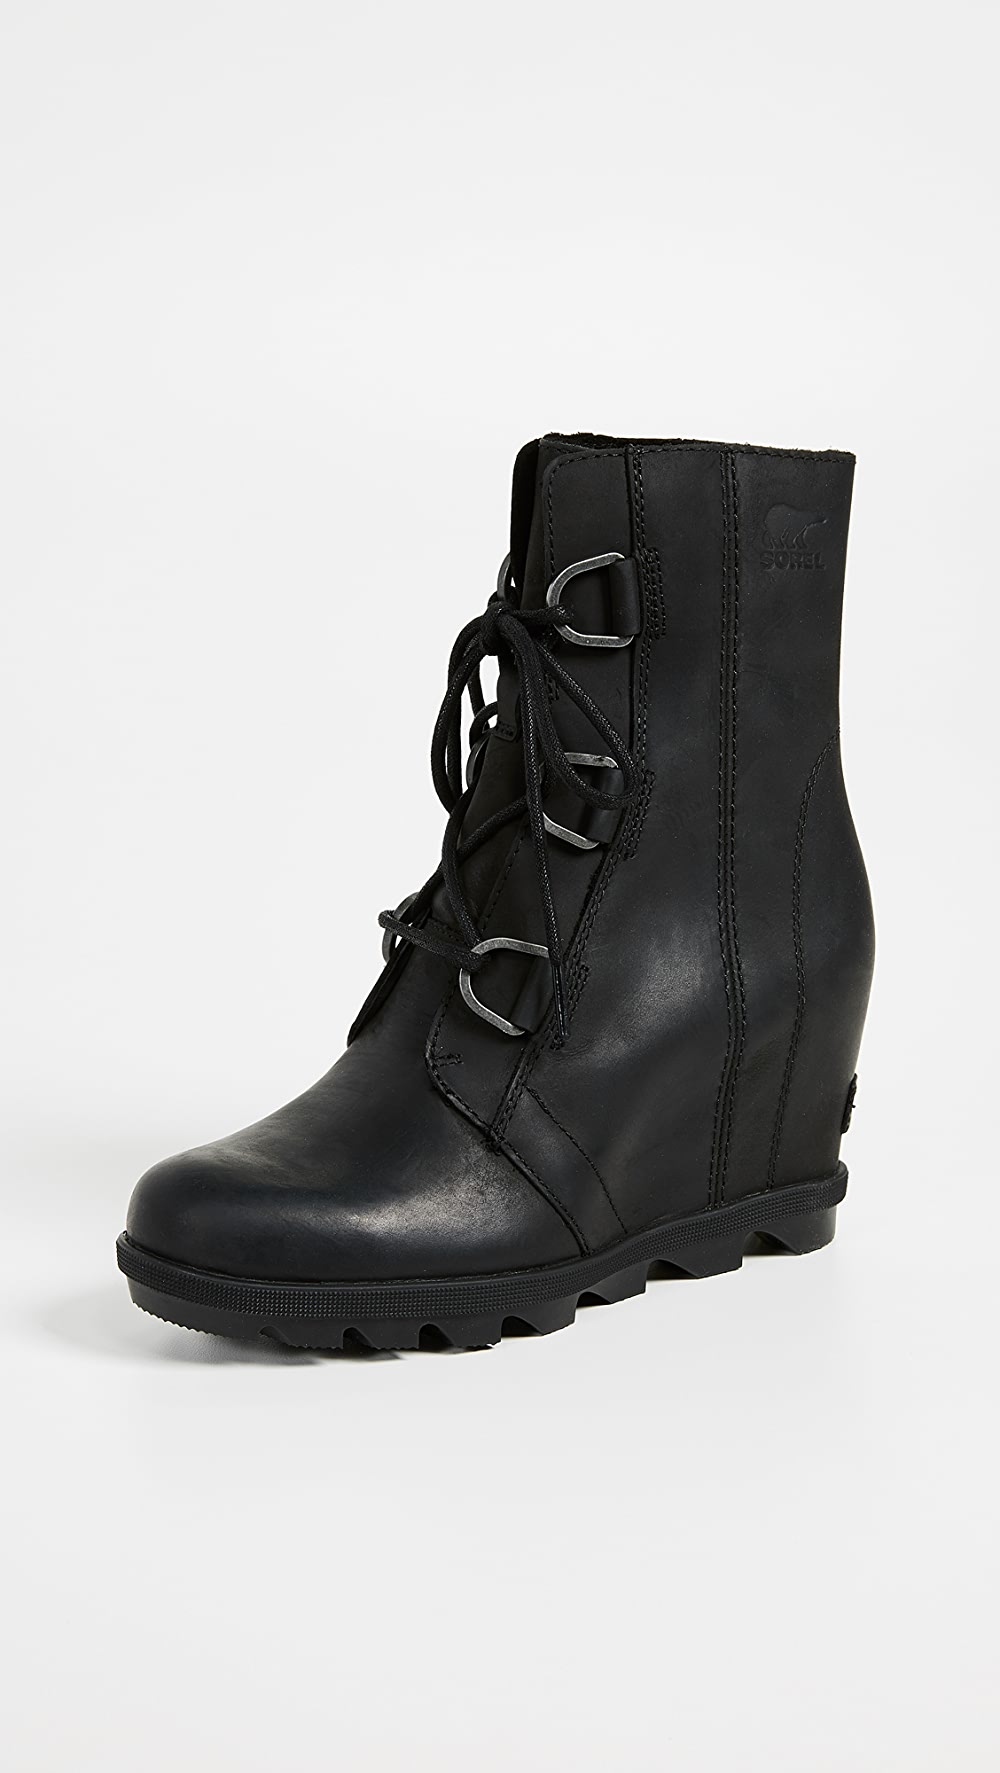 Gentle Sorel - Joan Of Arctic Wedge Ii Boots Do You Want To Buy Some Chinese Native Produce?